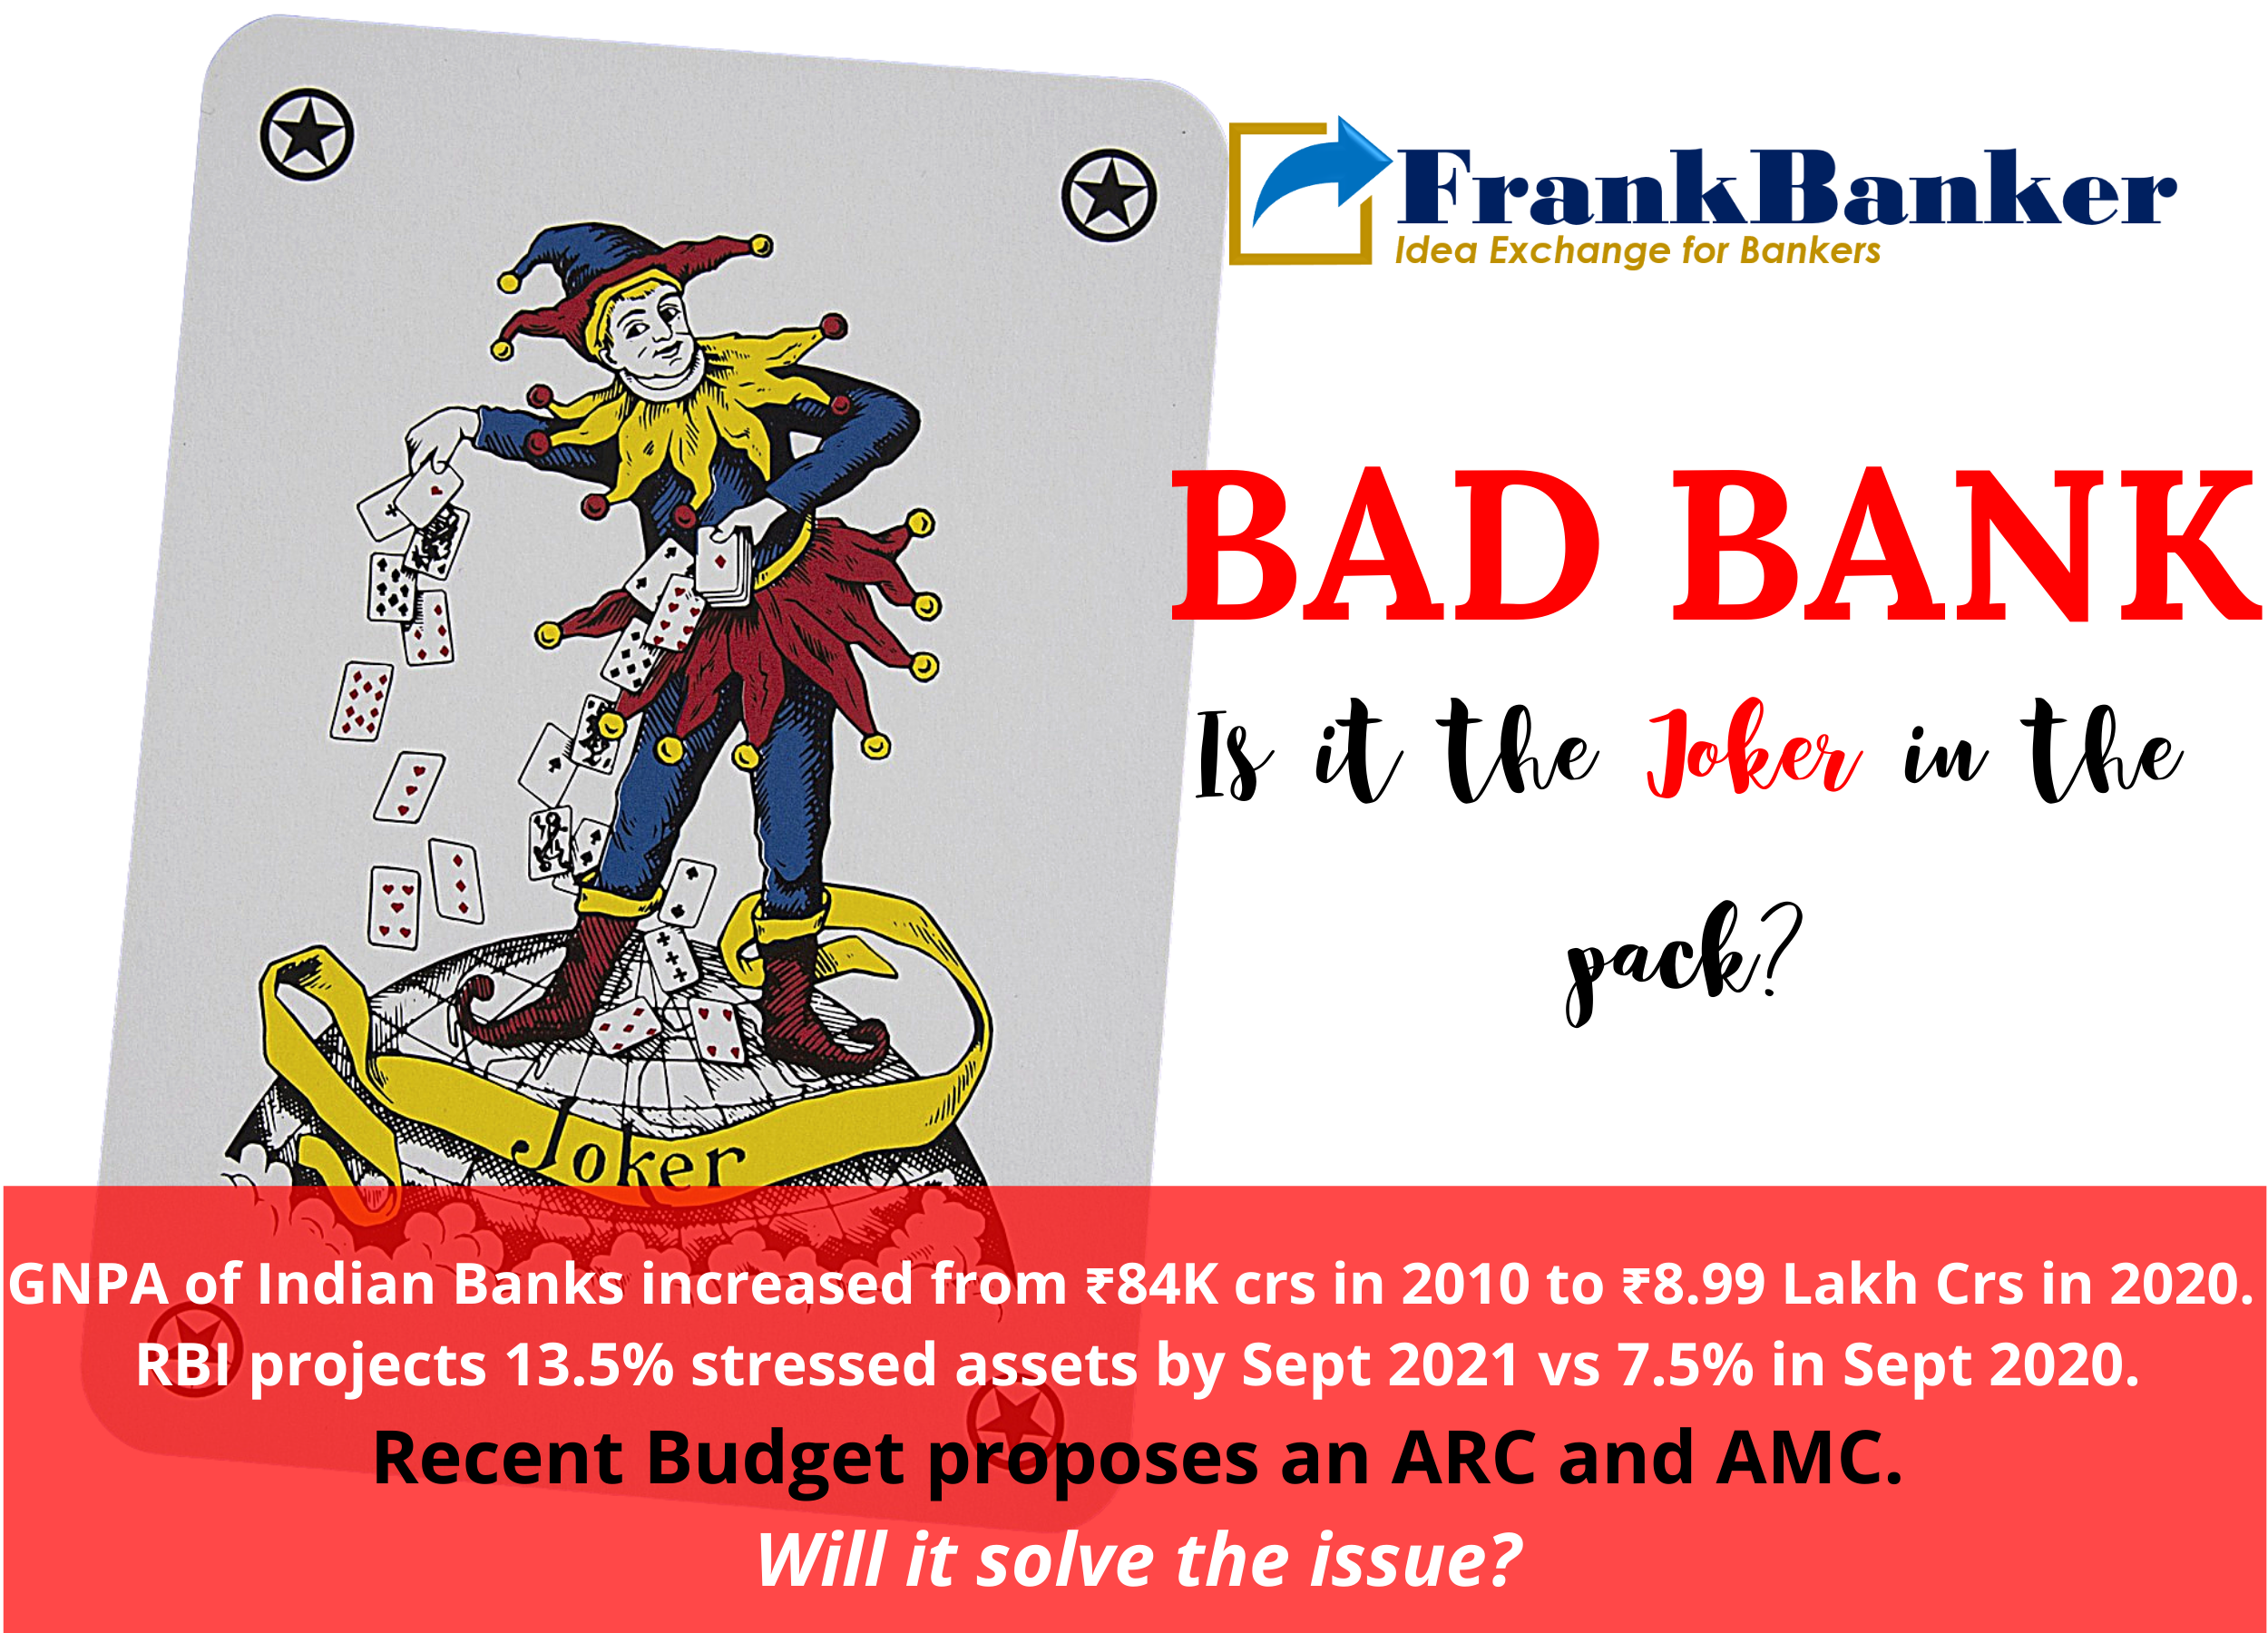 BAD BANK: Is it the Joker in the pack?